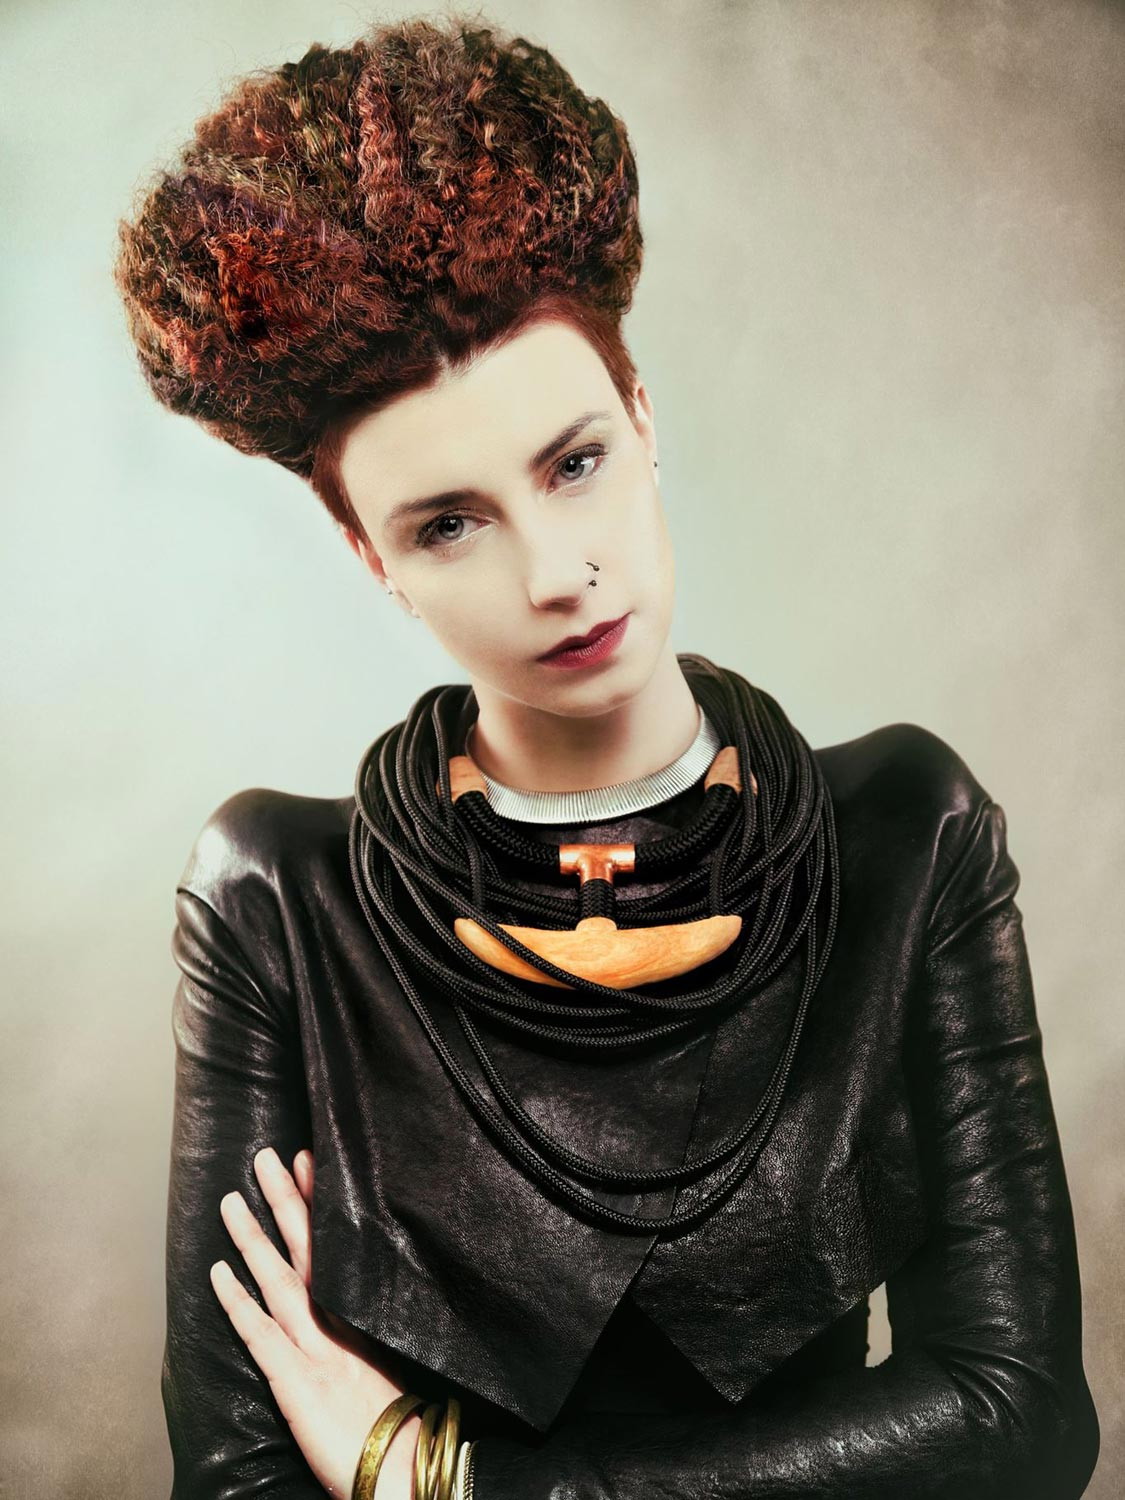 Michaela Kobylková, Salon Na stejné vlně, Brno – nominace v soutěžní kategorii Color Zoom Collection 2015 GLOBAL CREATIVE COLORIST.